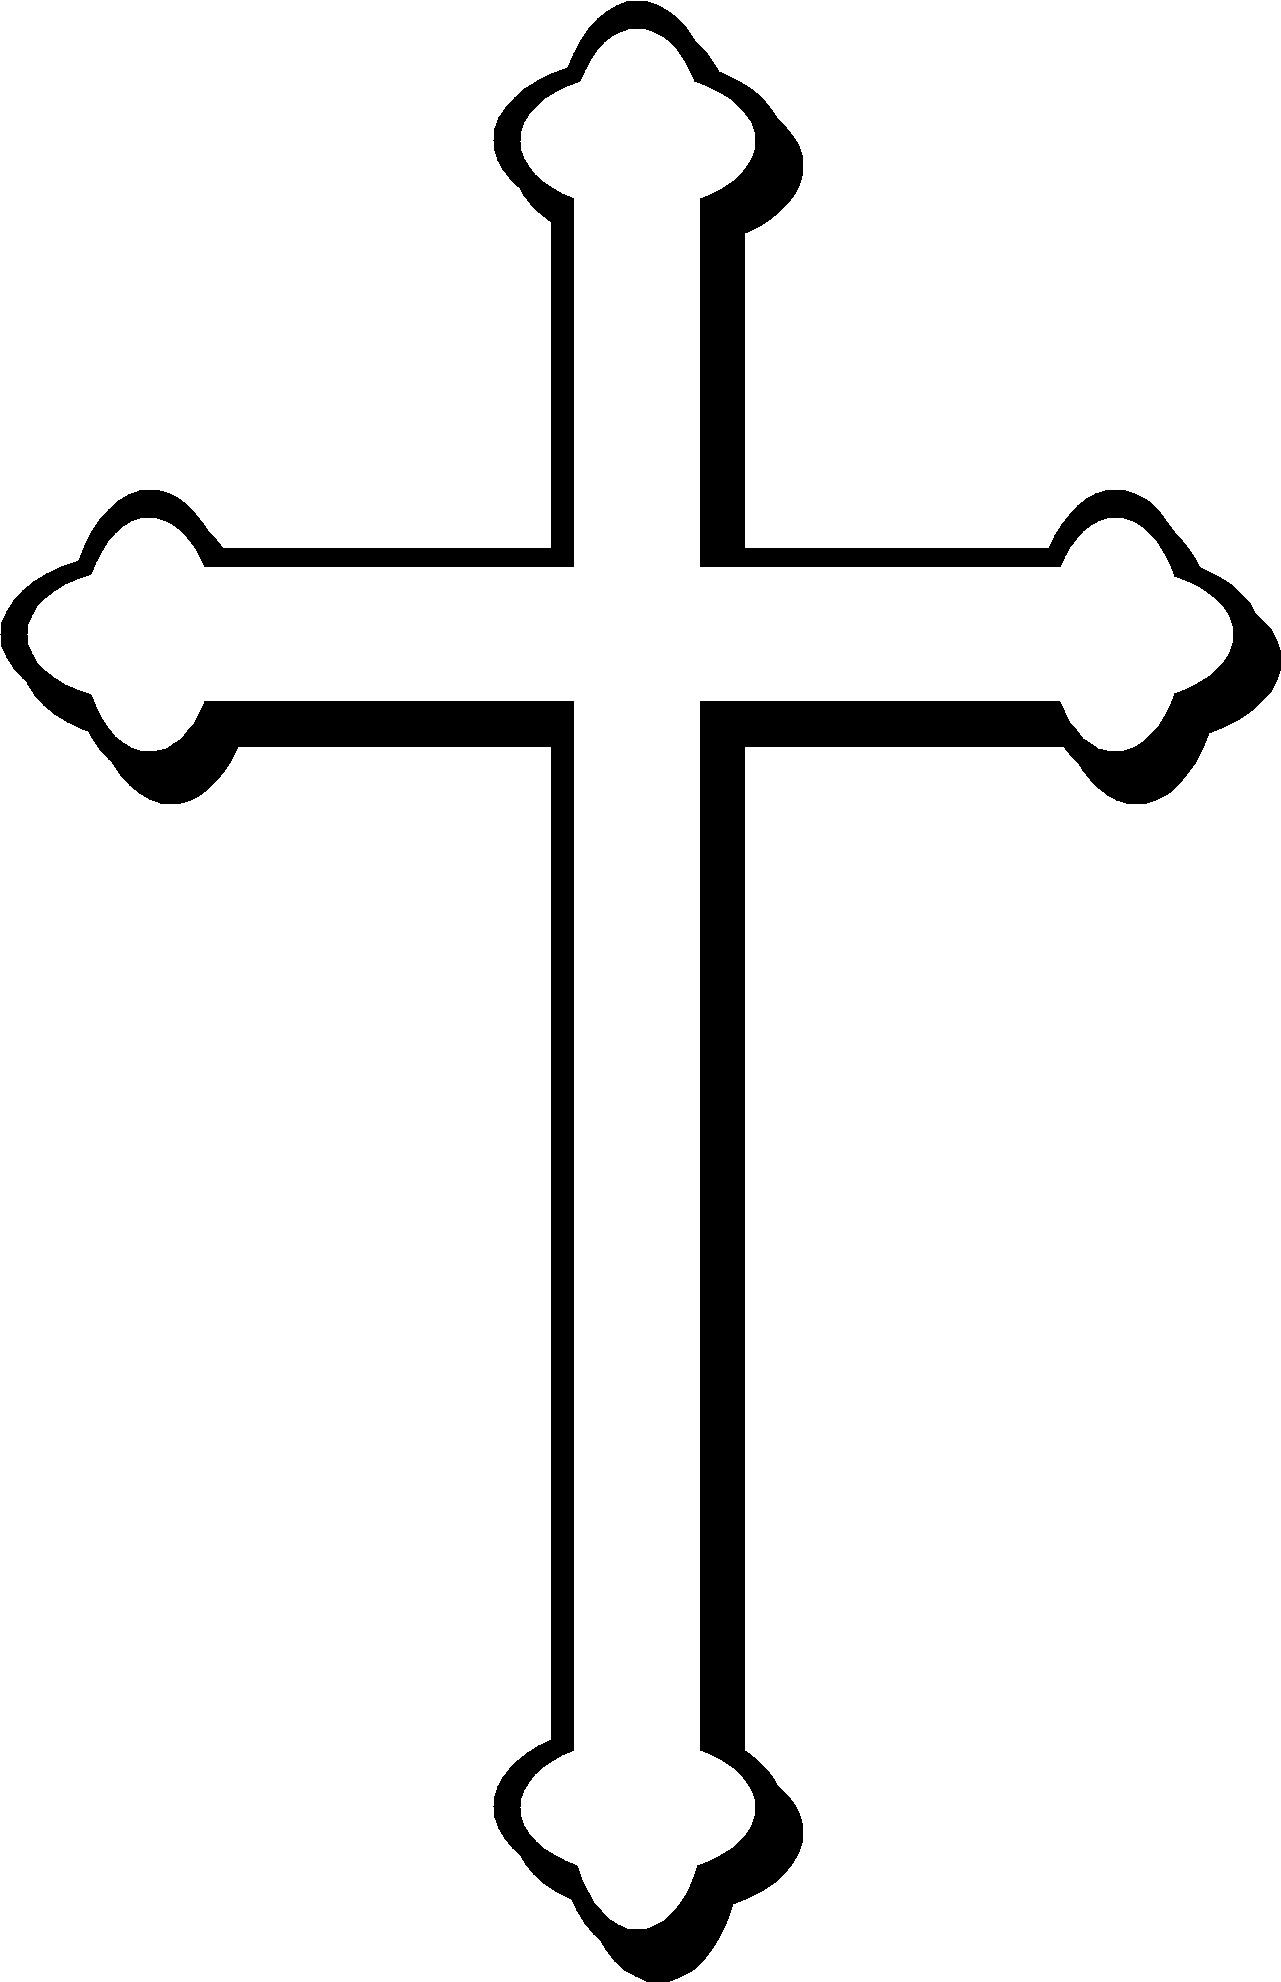 clipart of jesus on the cross clipart best crosses pinterest rh pinterest com jesus carrying the cross clipart jesus on the cross clipart images